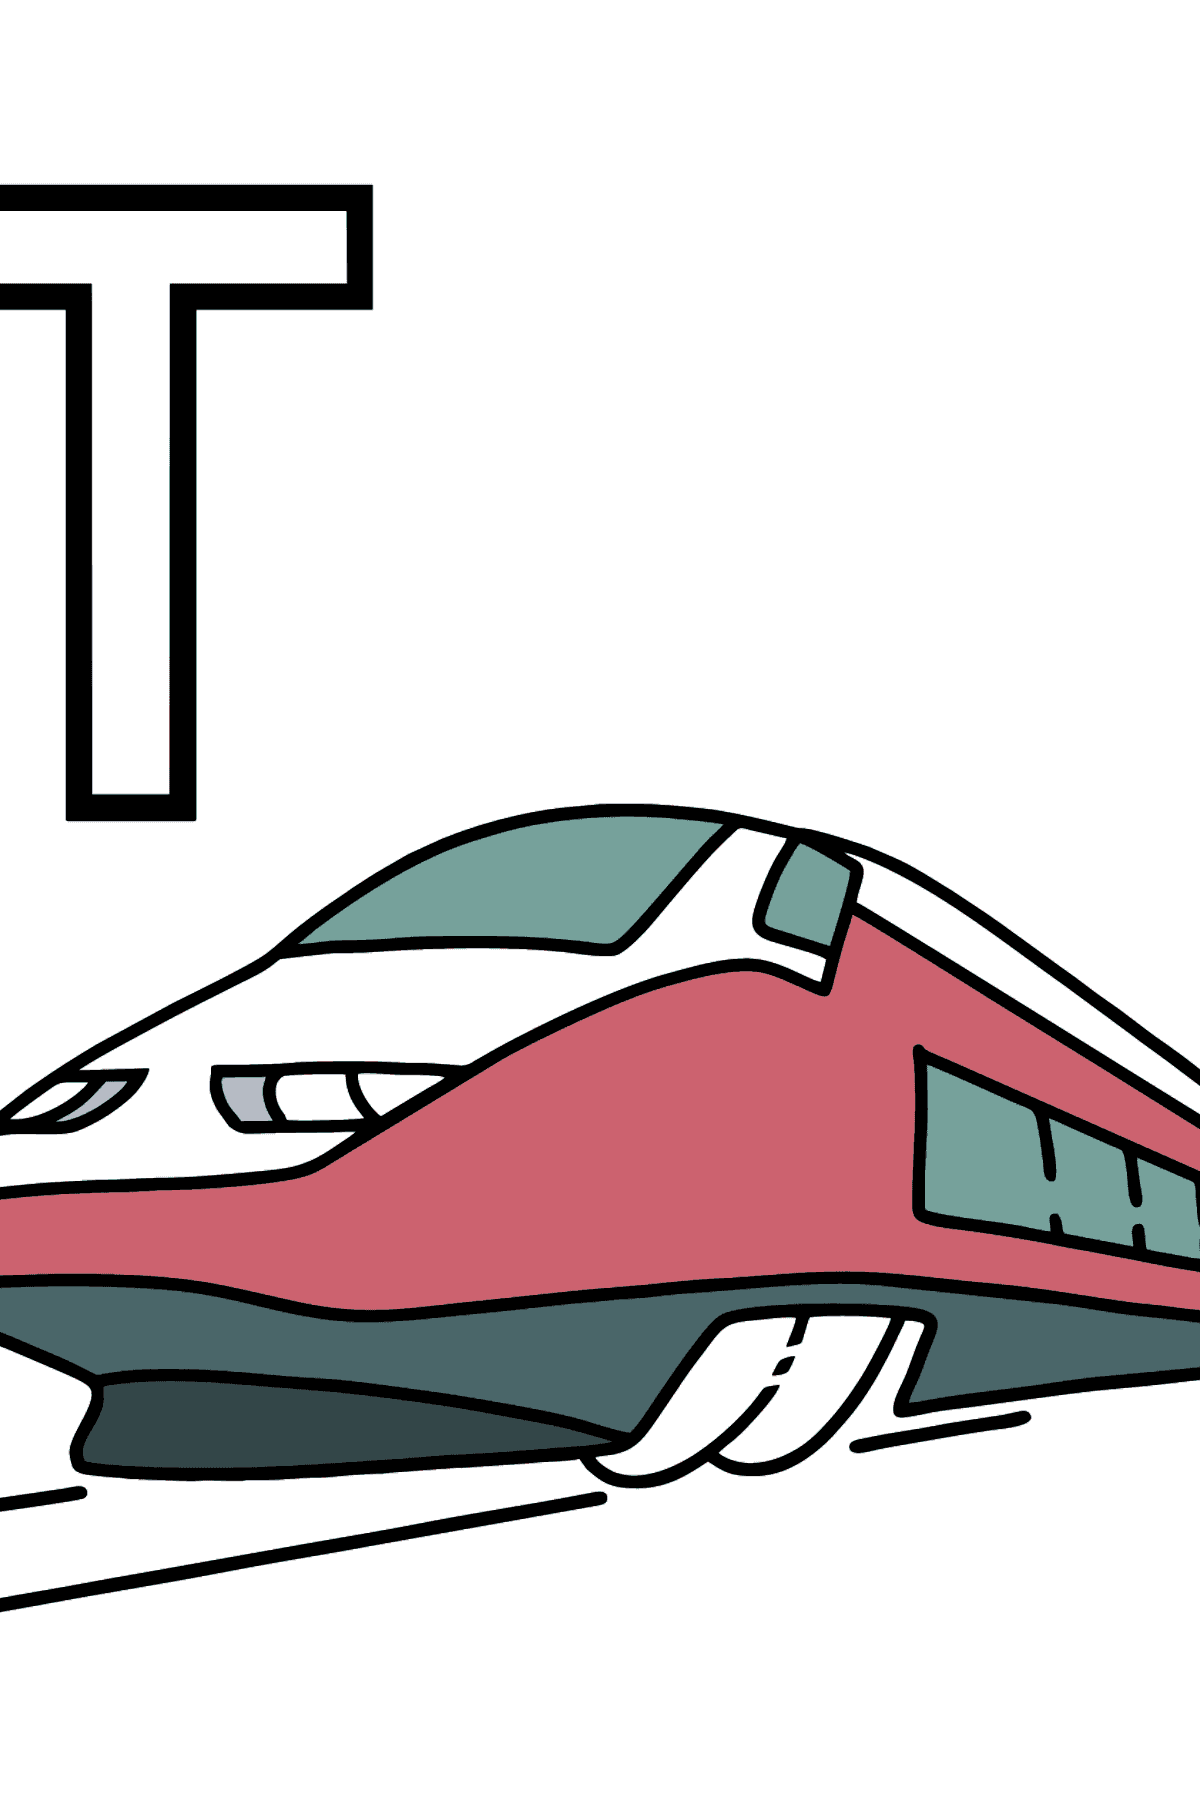 English Letter T coloring pages - TRAIN - Coloring Pages for Kids